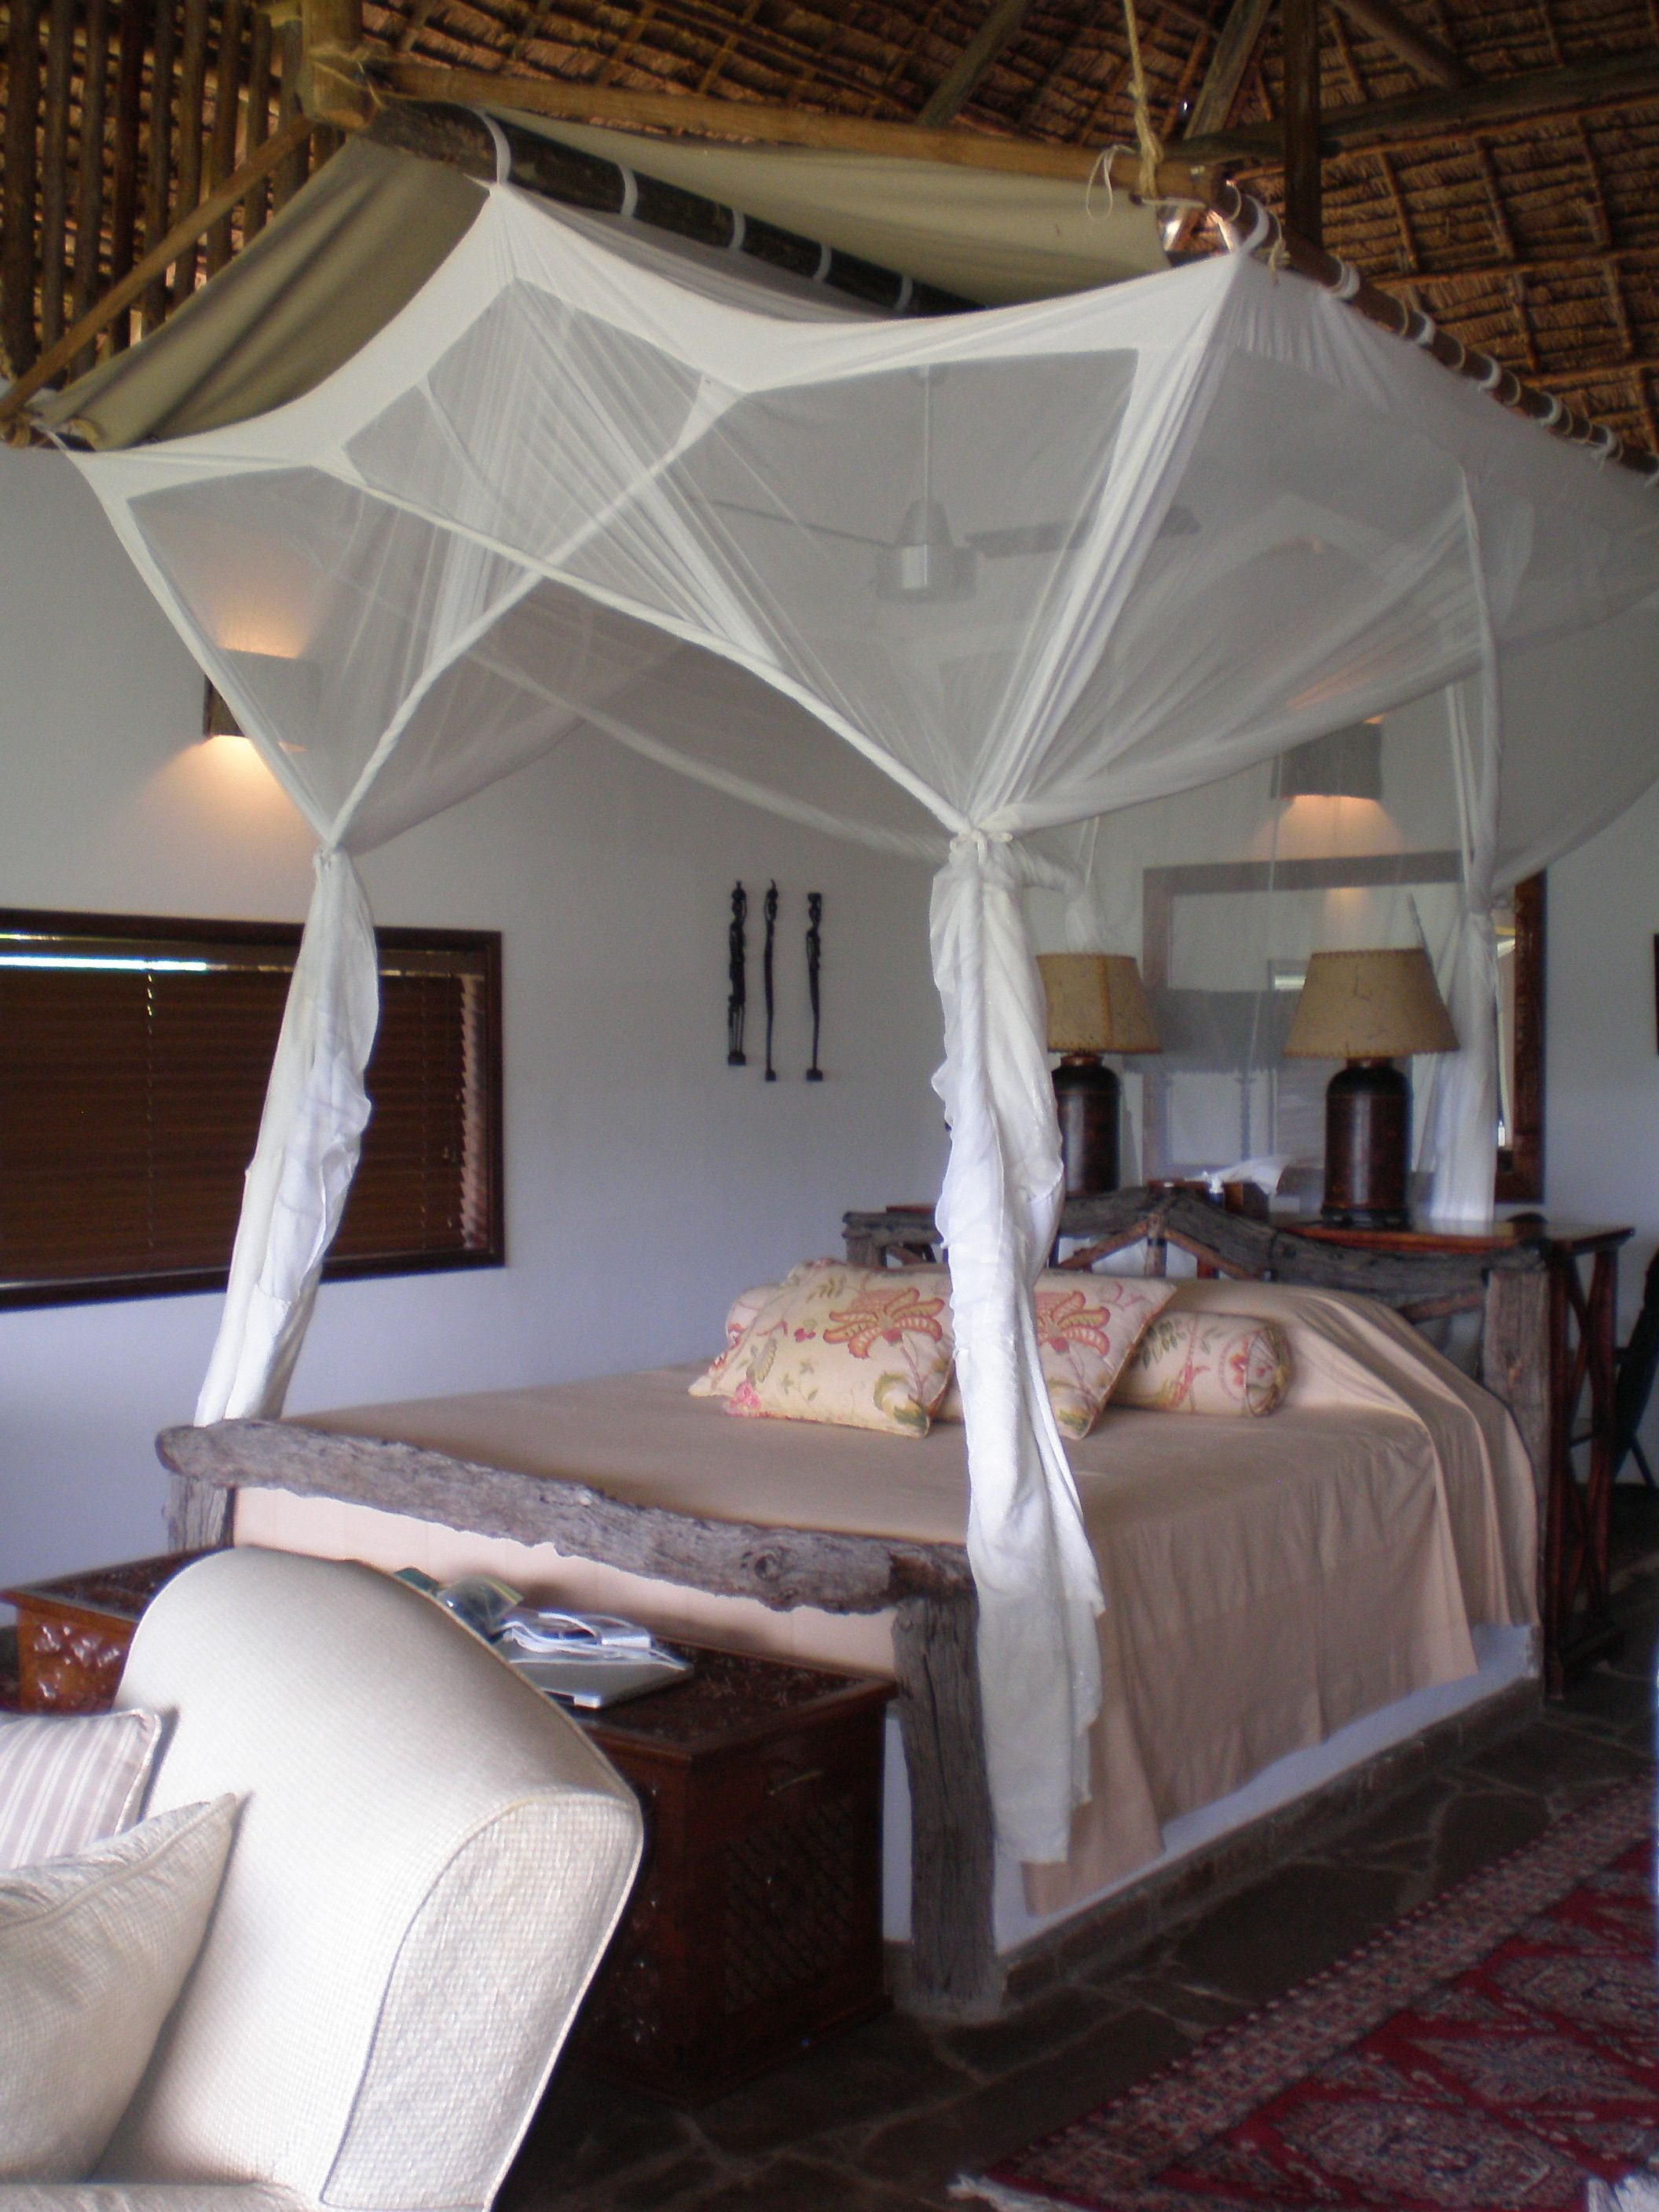 Beho Beho Safari Camp located in Tanzania in the Selous